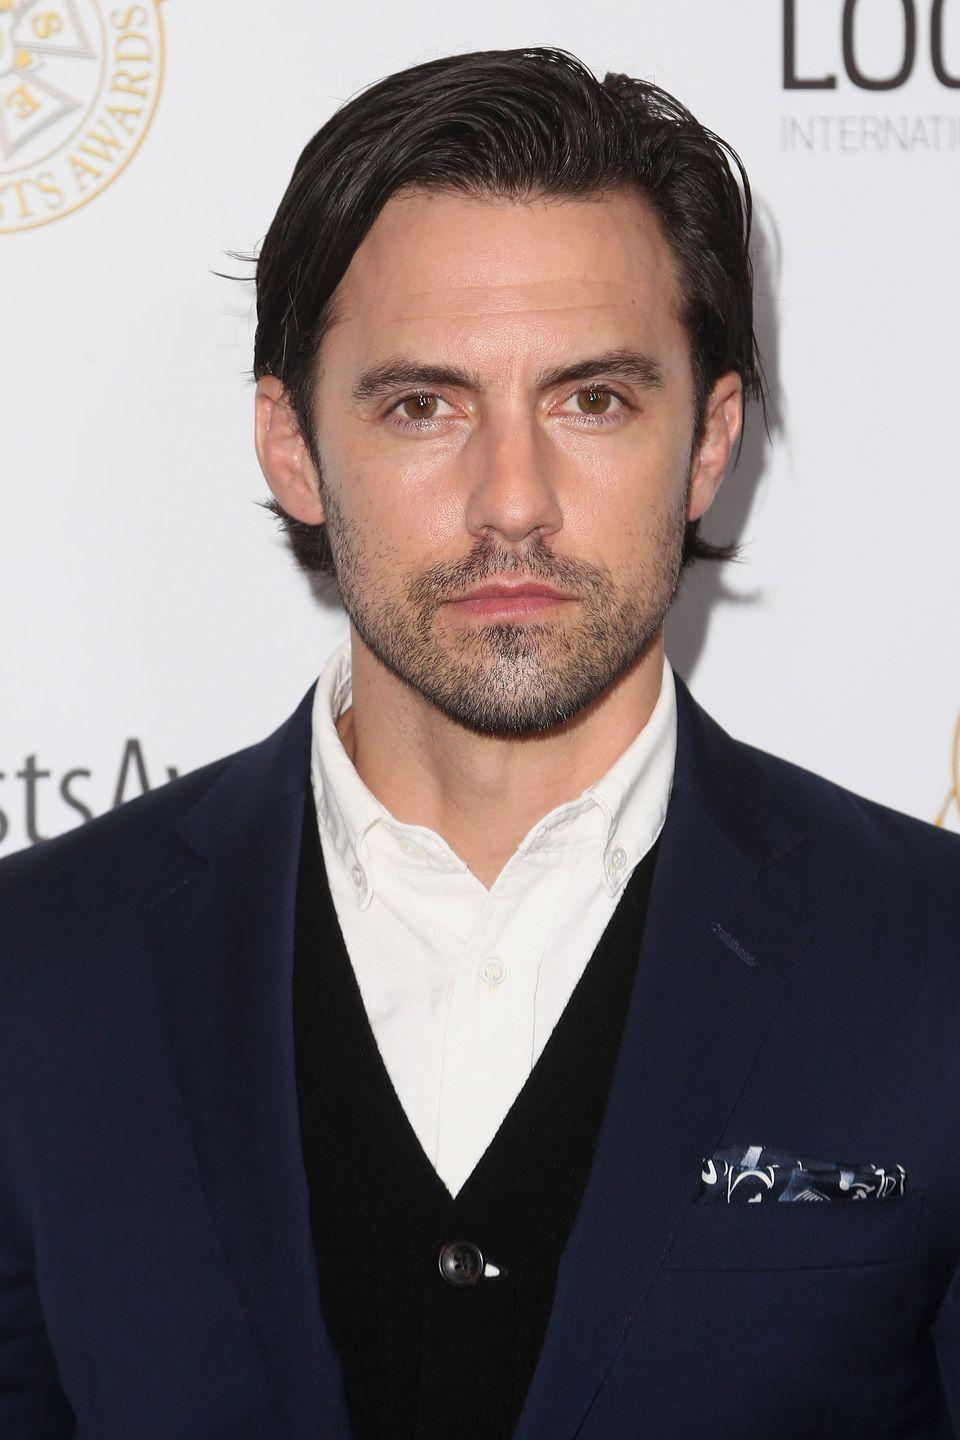 "<p>Most fans were crushed by Rory and Jess's breakup in season 3, but Milo Ventimiglia admitted he was ready to say goodbye. ""I was the one who actually tried to get [the character] Jess killed, and they didn't go for it. [I wanted to] get him hit by a bus, a knife in the side of the neck, something bad. [Laughs.] I don't know—guess I thought it would be kind of cool,"" Ventimiglia told <a href=""https://www.eonline.com/news/3391/star-q-a-milo-ventimiglia"" rel=""nofollow noopener"" target=""_blank"" data-ylk=""slk:E! News"" class=""link rapid-noclick-resp""><em>E! News</em></a>. Thankfully for us, Ventimiglia reprised his role a few times after leaving.</p>"